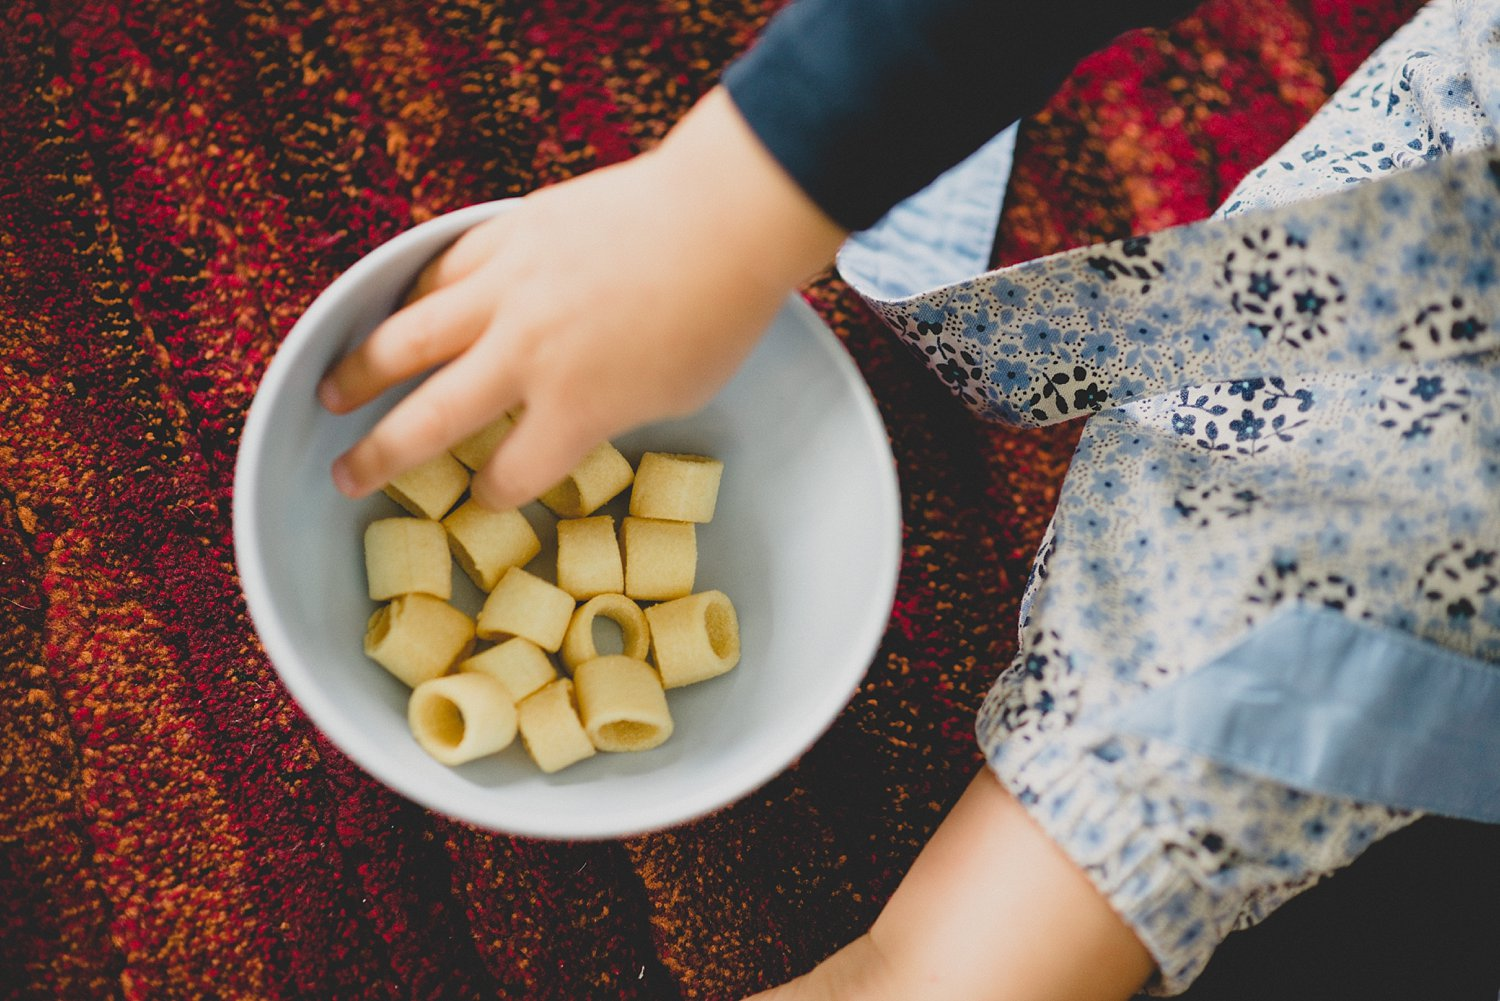 kids hands and snacks in a bowl - 5 Tips for Doing Lifestyle Photo Sessions